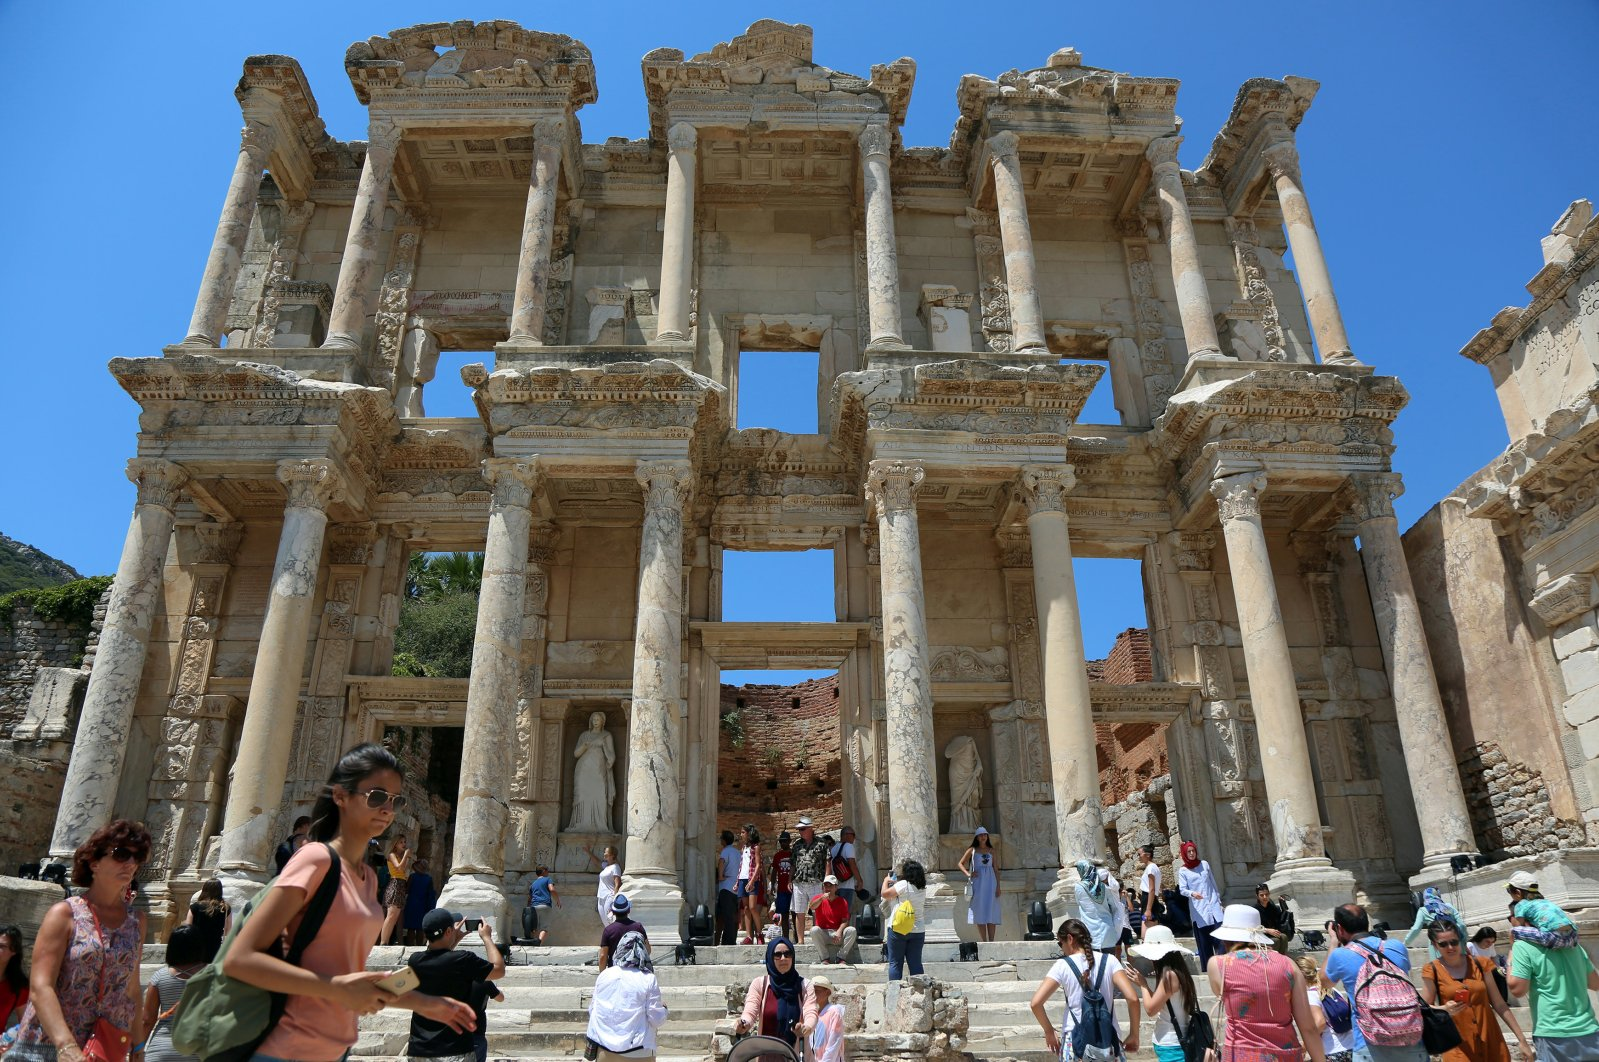 Tourists visit the Celsius Library in the ancient city of Ephesus near İzmir in the western Aegean region, Turkey, Aug. 5, 2018. (Reuters Photo)